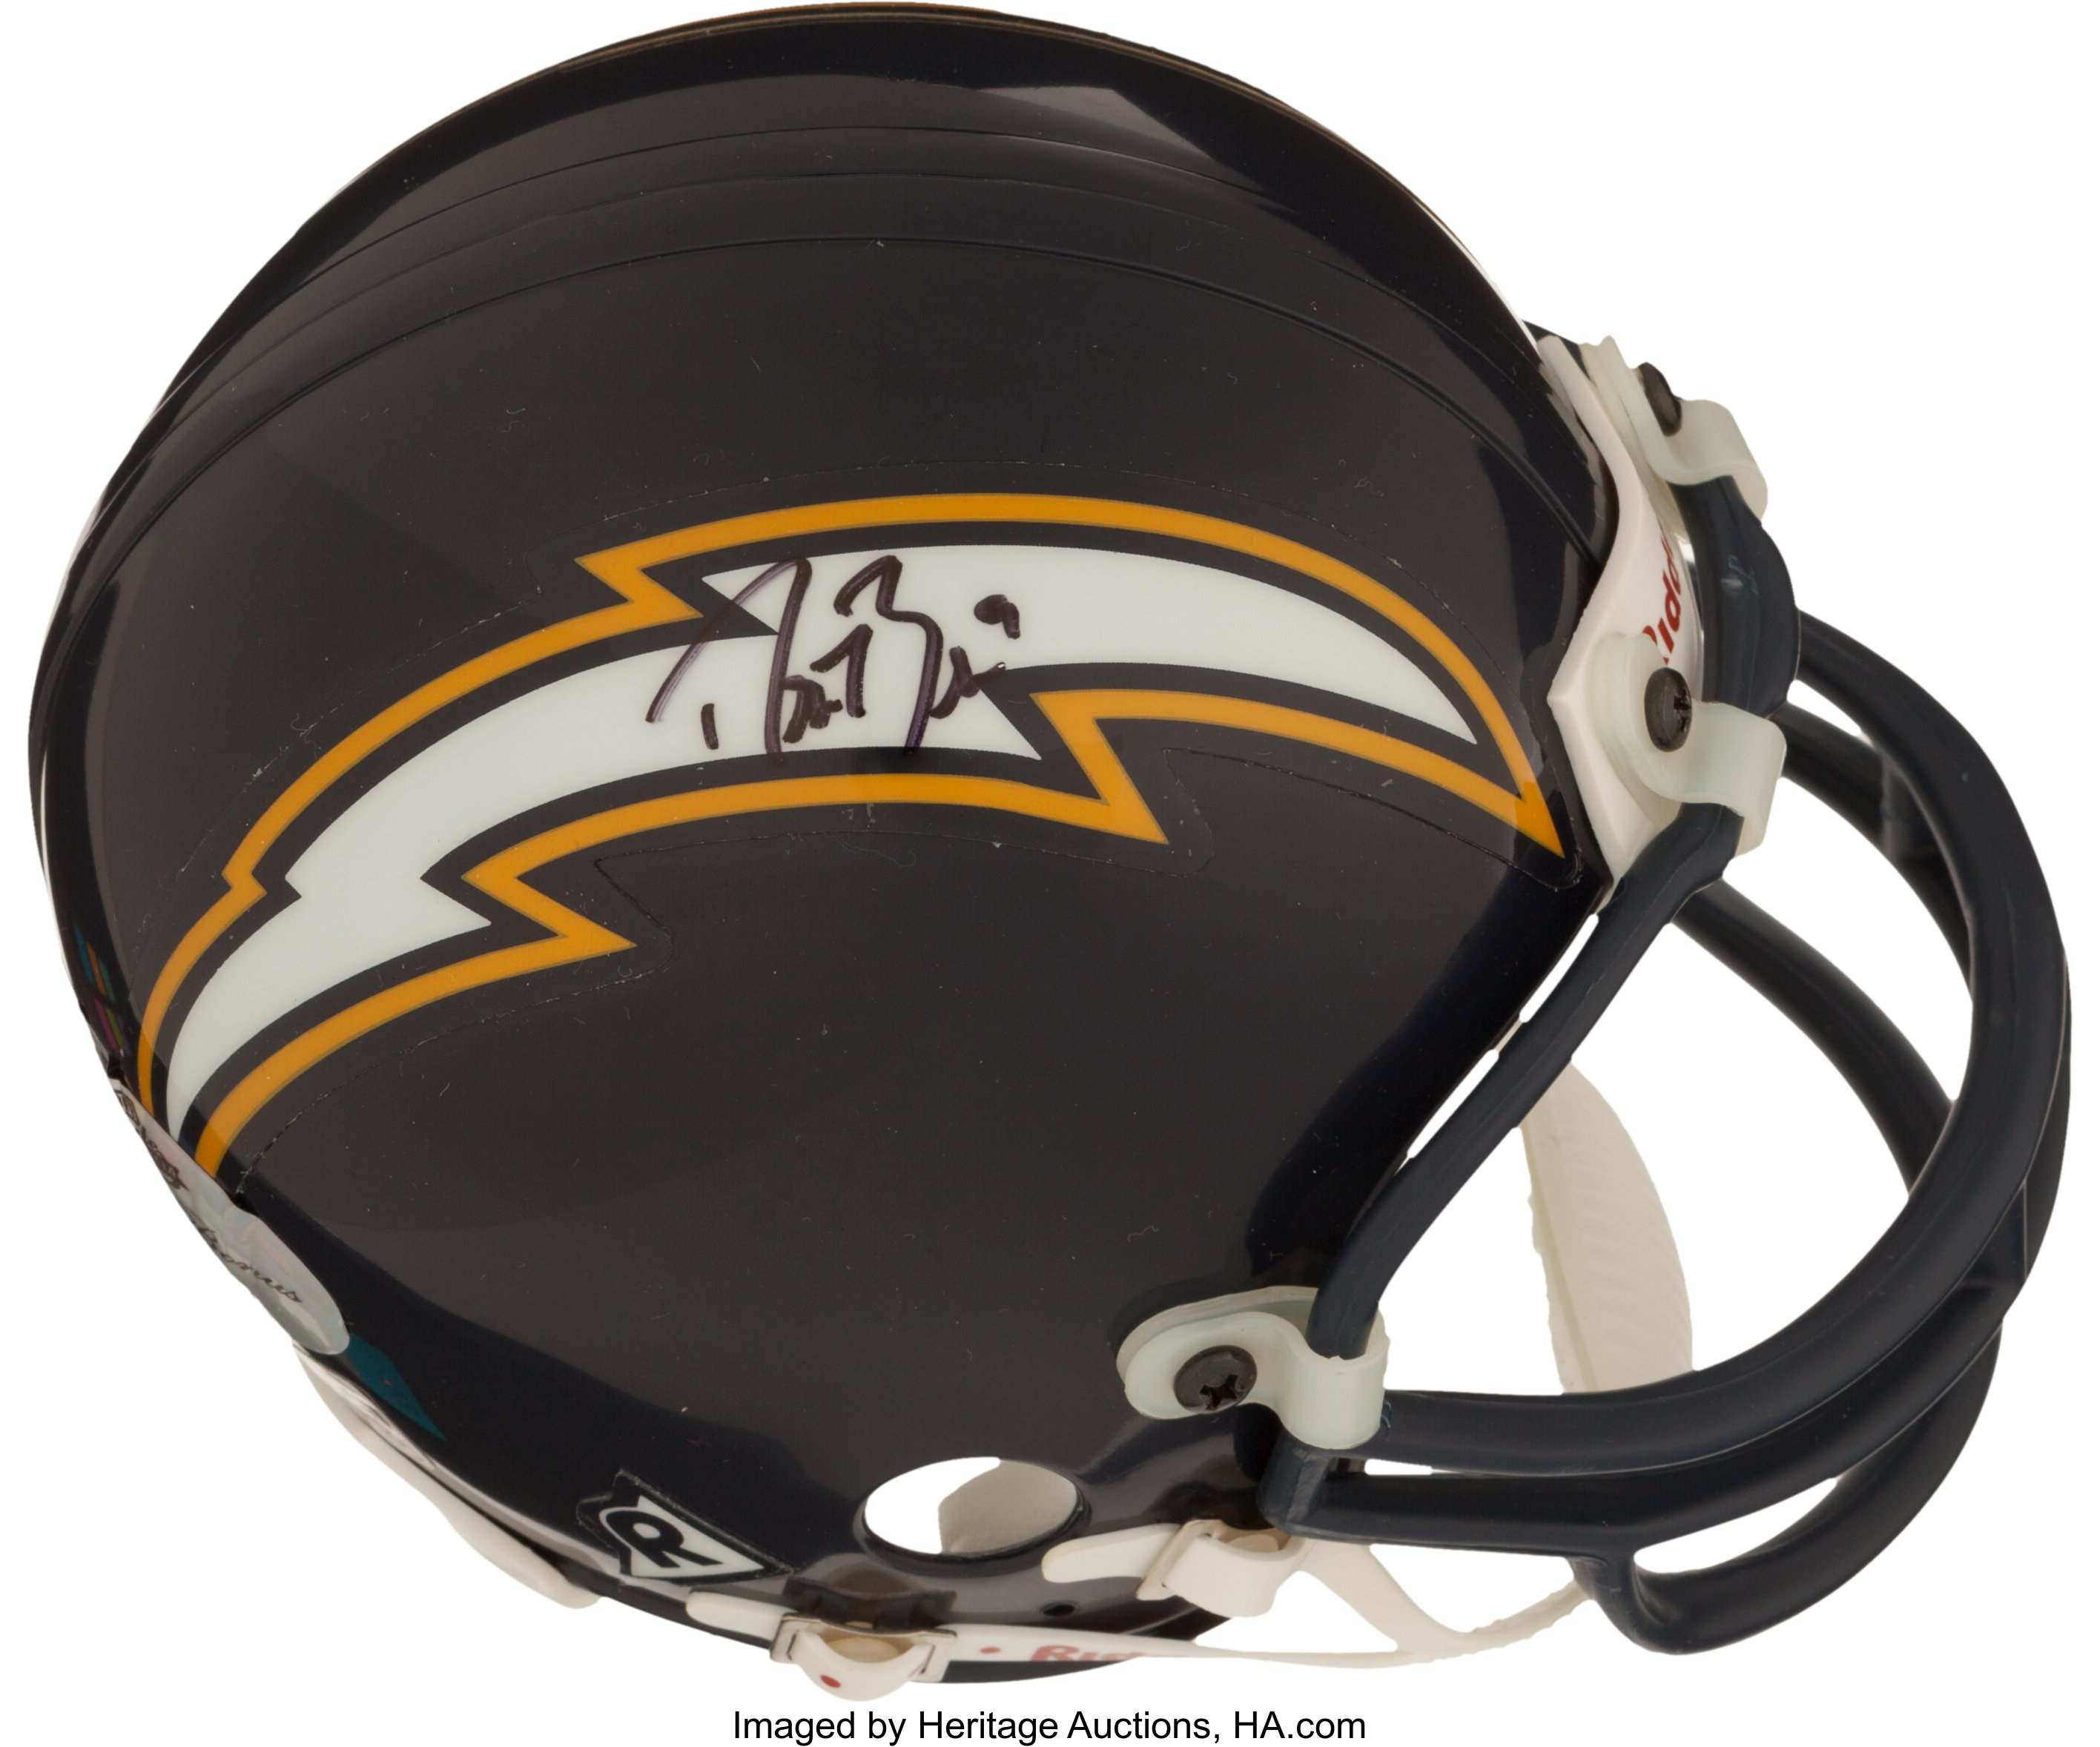 Drew Brees Signed San Diego Chargers Mini Helmet Football Lot 41148 Heritage Auctions